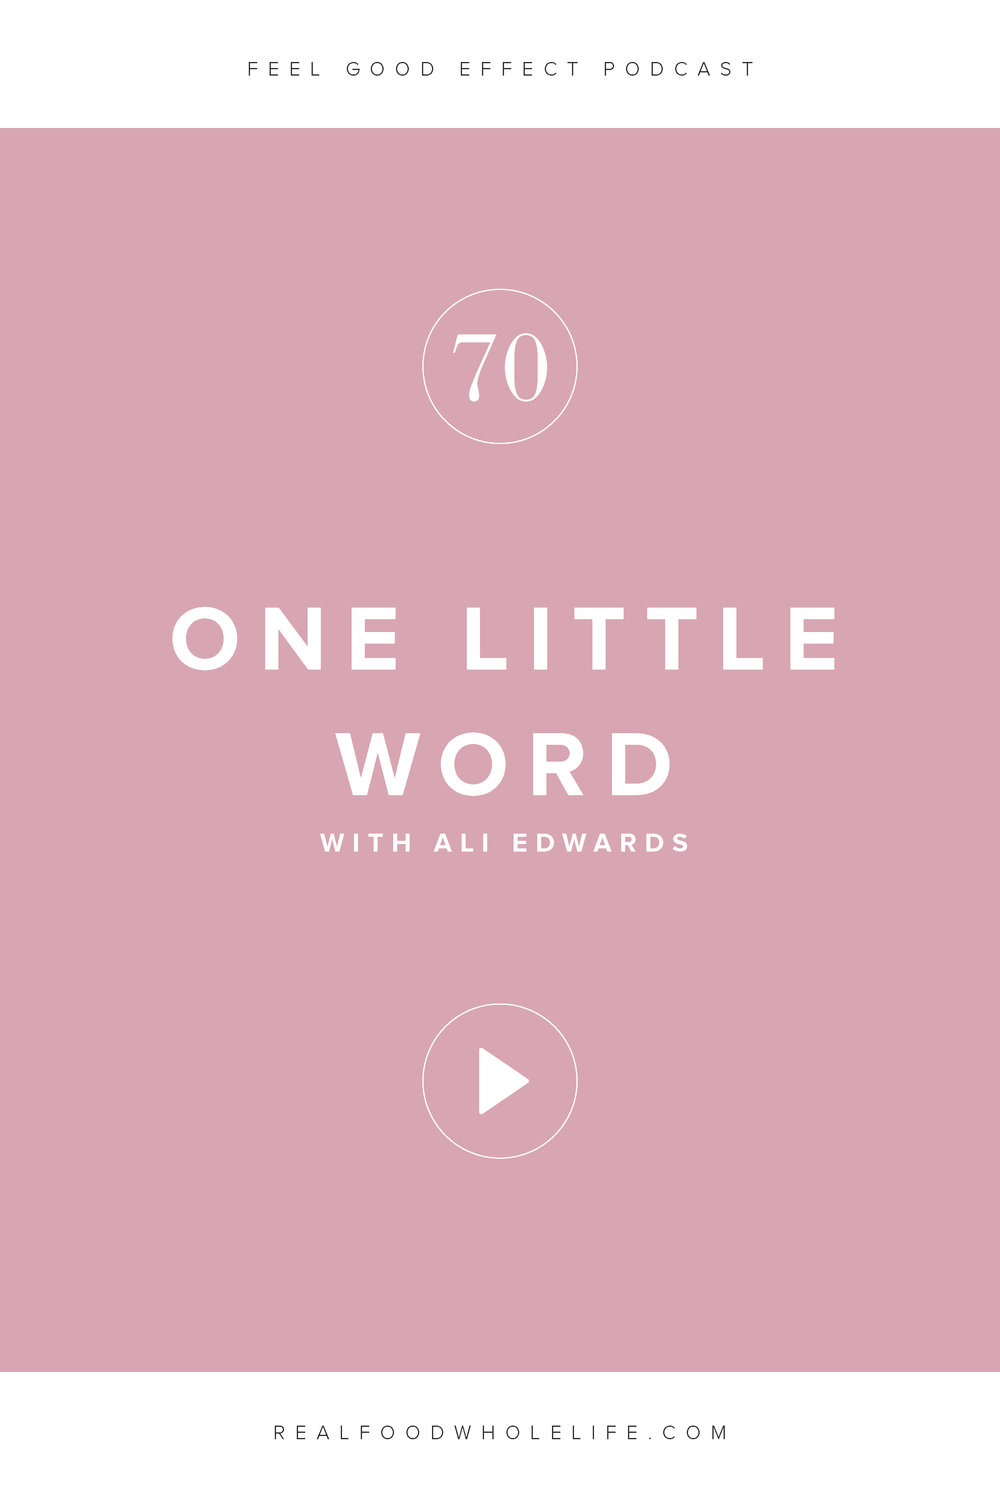 One Little Word with Ali Edwards, an episode of the Feel Good Effect podcast. Ali Edwards is an expert in that very special place where stories, images, and words about life intersect. In this episode, Ali talks about how to tell stories in a way that promotes growth, by challenging the ways we tell ourselves stories. #realfoodwholelife #feelgoodeffectpodcast #personaldevelopment #selfcare #selfimprovement #podcast #wellnesspodcast #healthpodcast  #wellness #wellnesspodcast  #healthandwellness #healthandwellnesspodcast #onelittleword #resolution #newyearsresolution